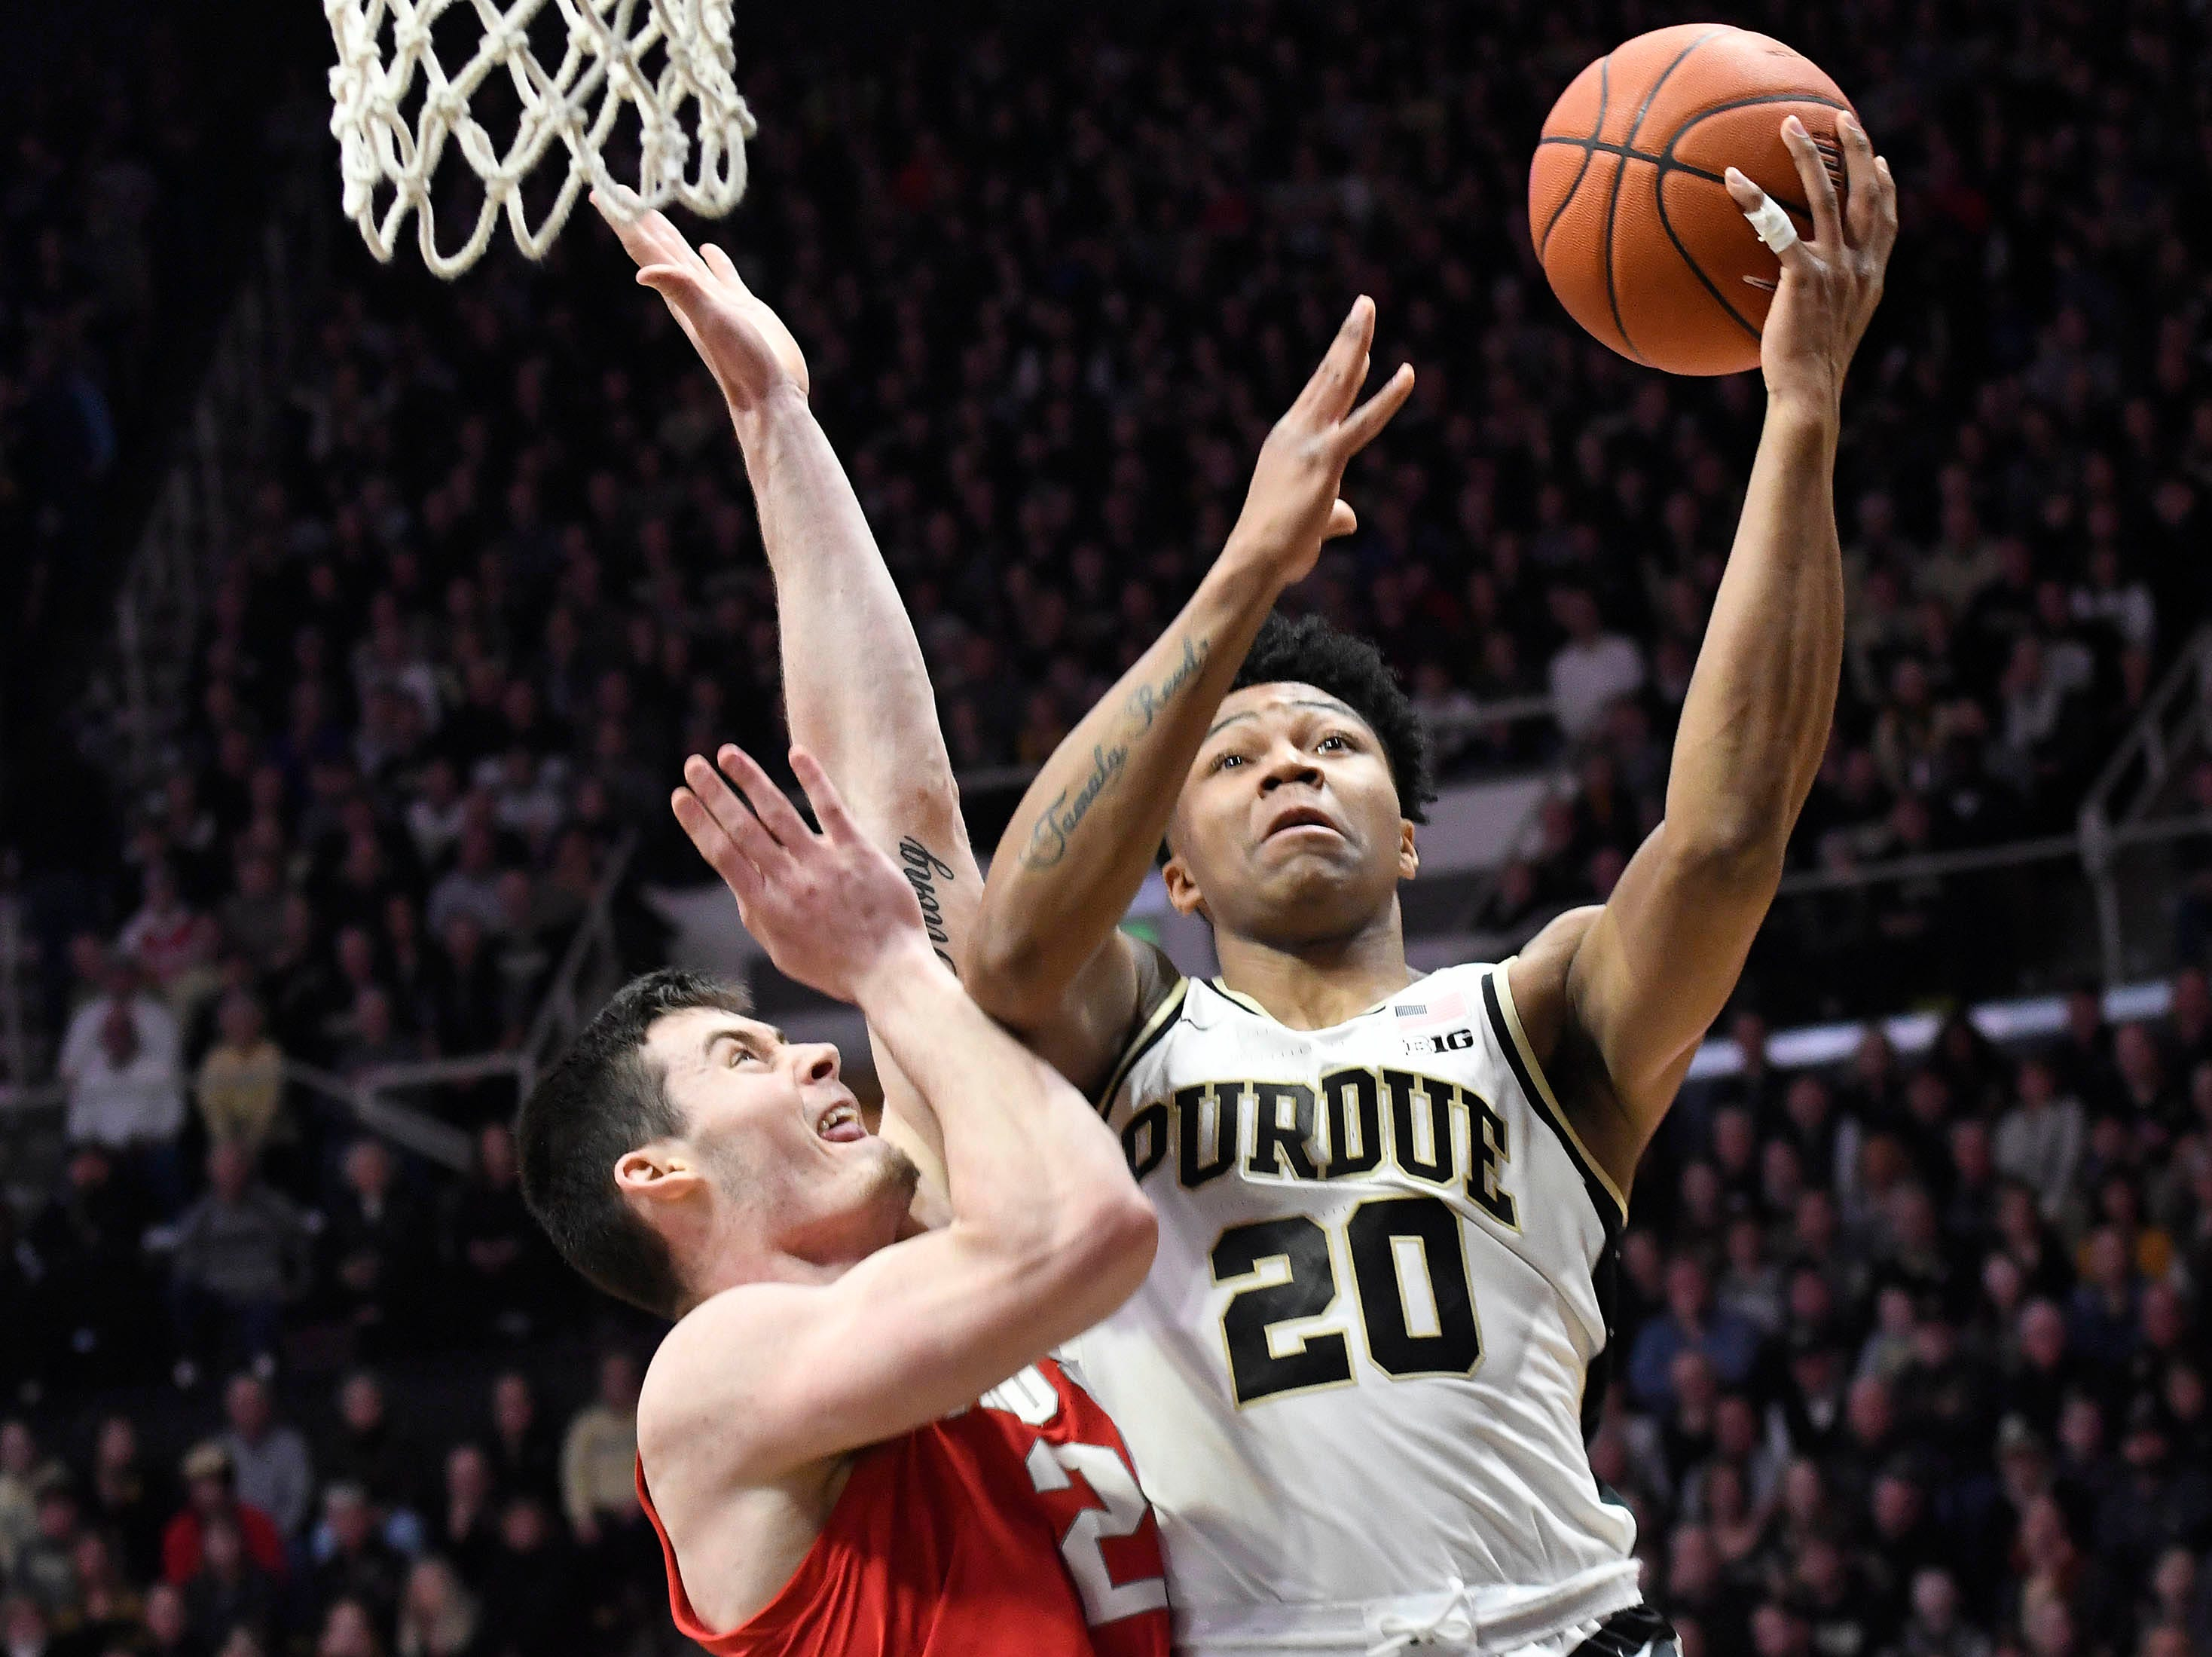 Mar 2, 2019; West Lafayette, IN, USA; Purdue Boilermakers guard Nojel Eastern (20) drives past the defense or a shot  in the first half at Mackey Arena. Mandatory Credit: Sandra Dukes-USA TODAY Sports